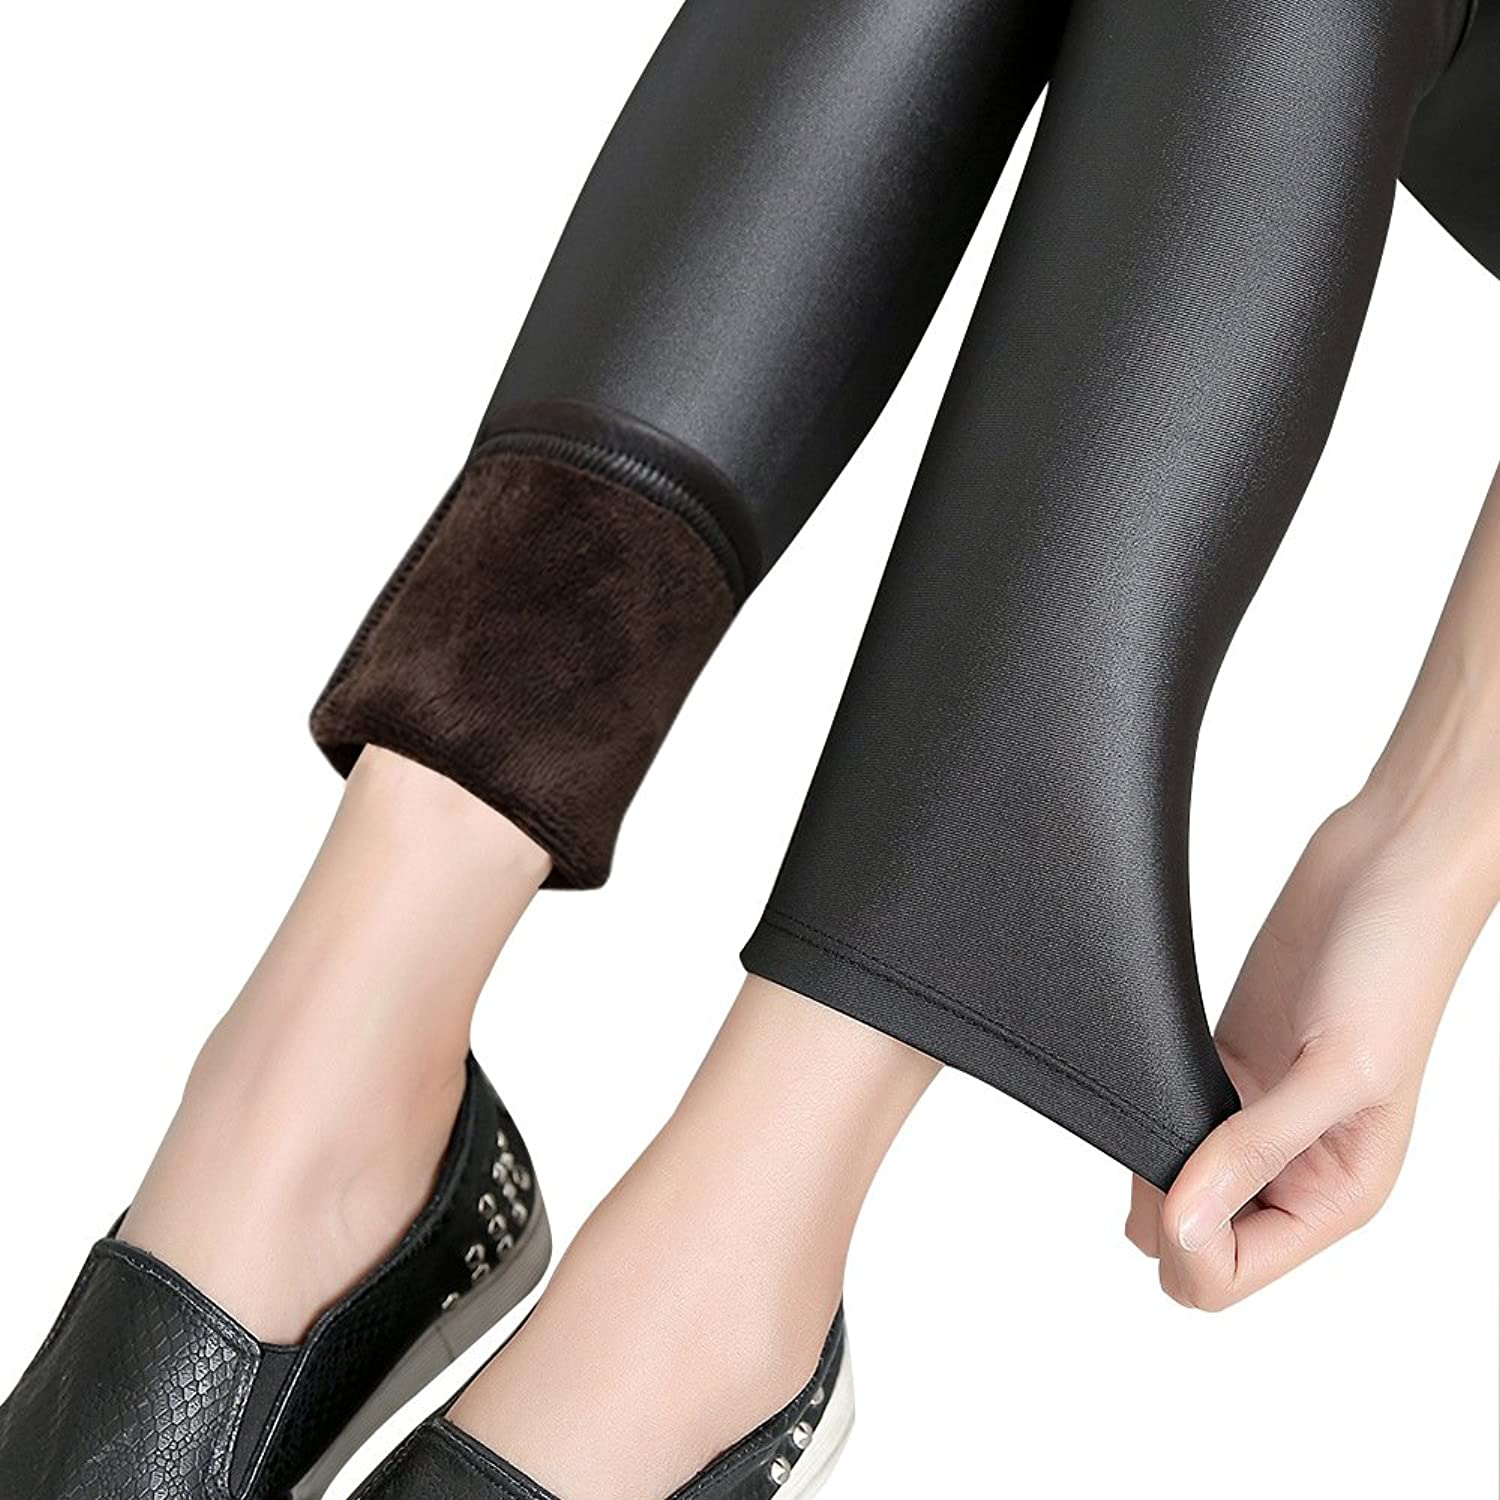 Thermal Pants Women For Winter Black Warm Velvet Insides Faux Leather Stretchy Tight Outdoor Wearing